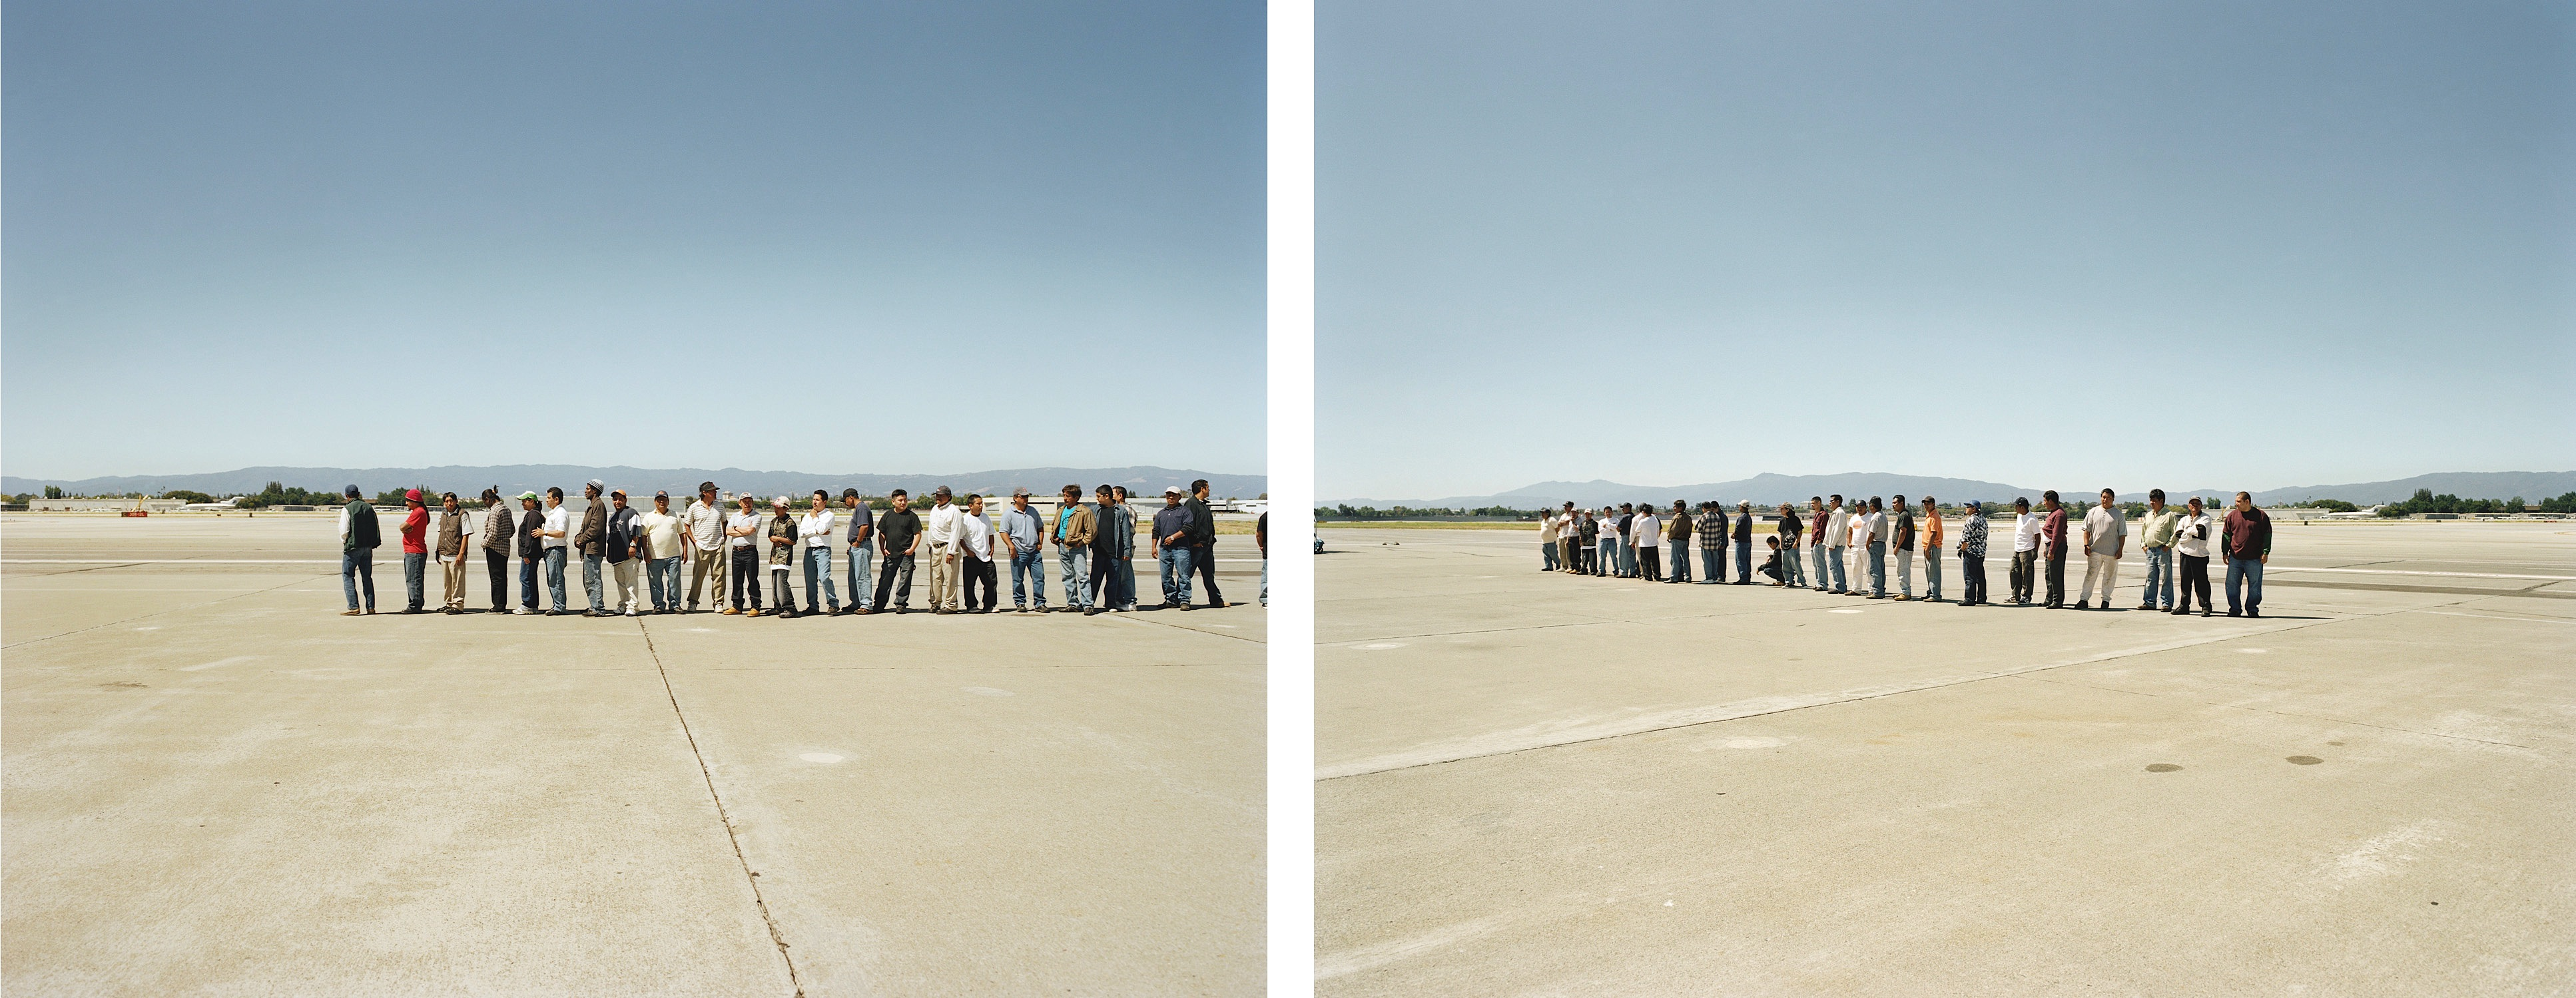 Adrian Paci - The line (diptych)